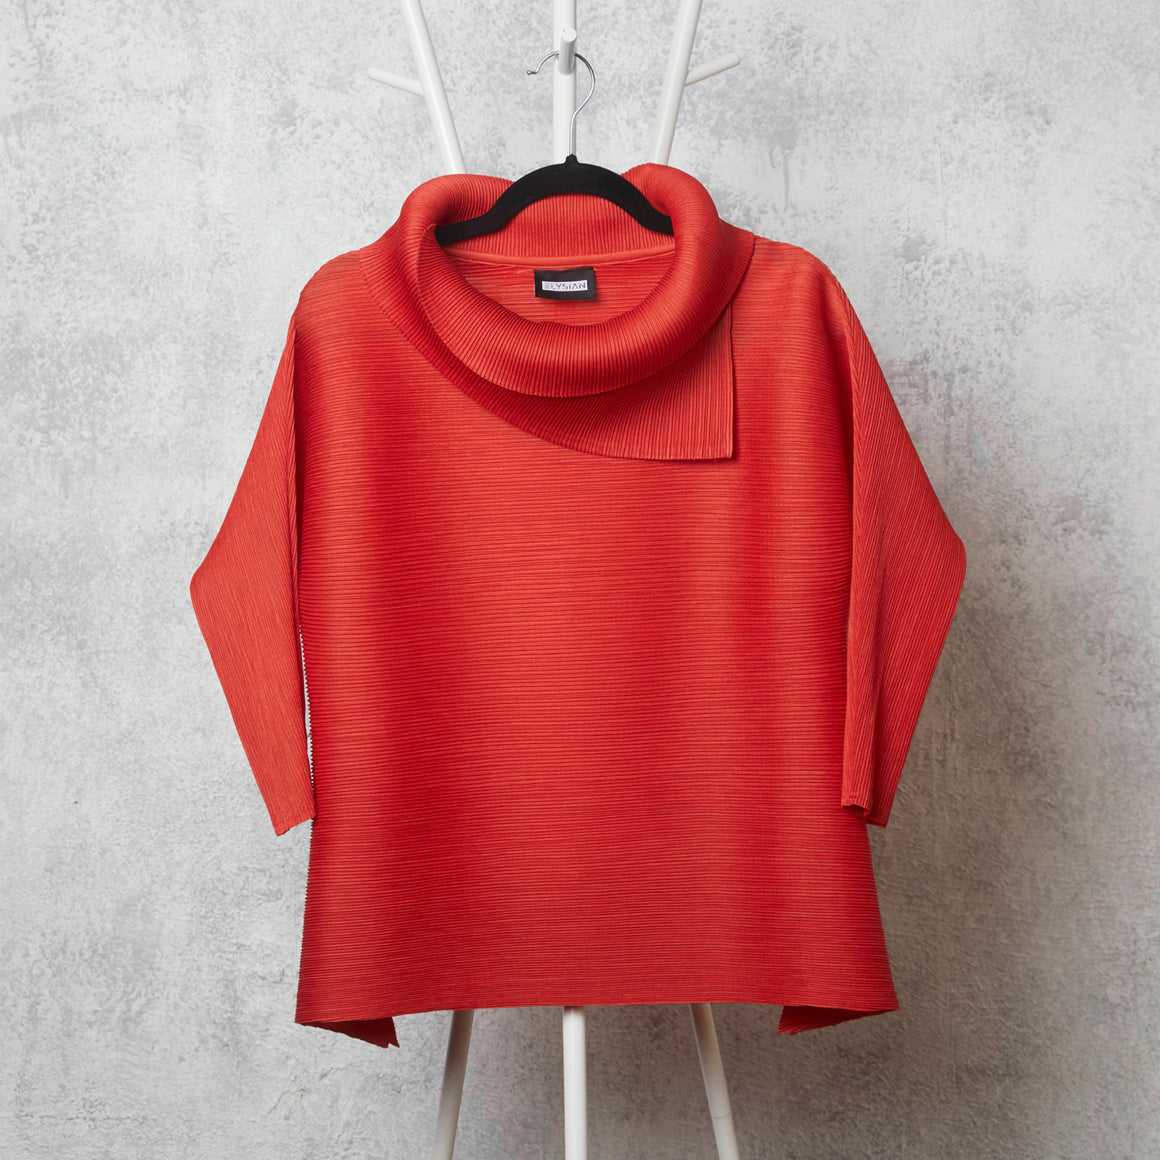 3/4th Sleeve Turtle Neck - TomatoRed